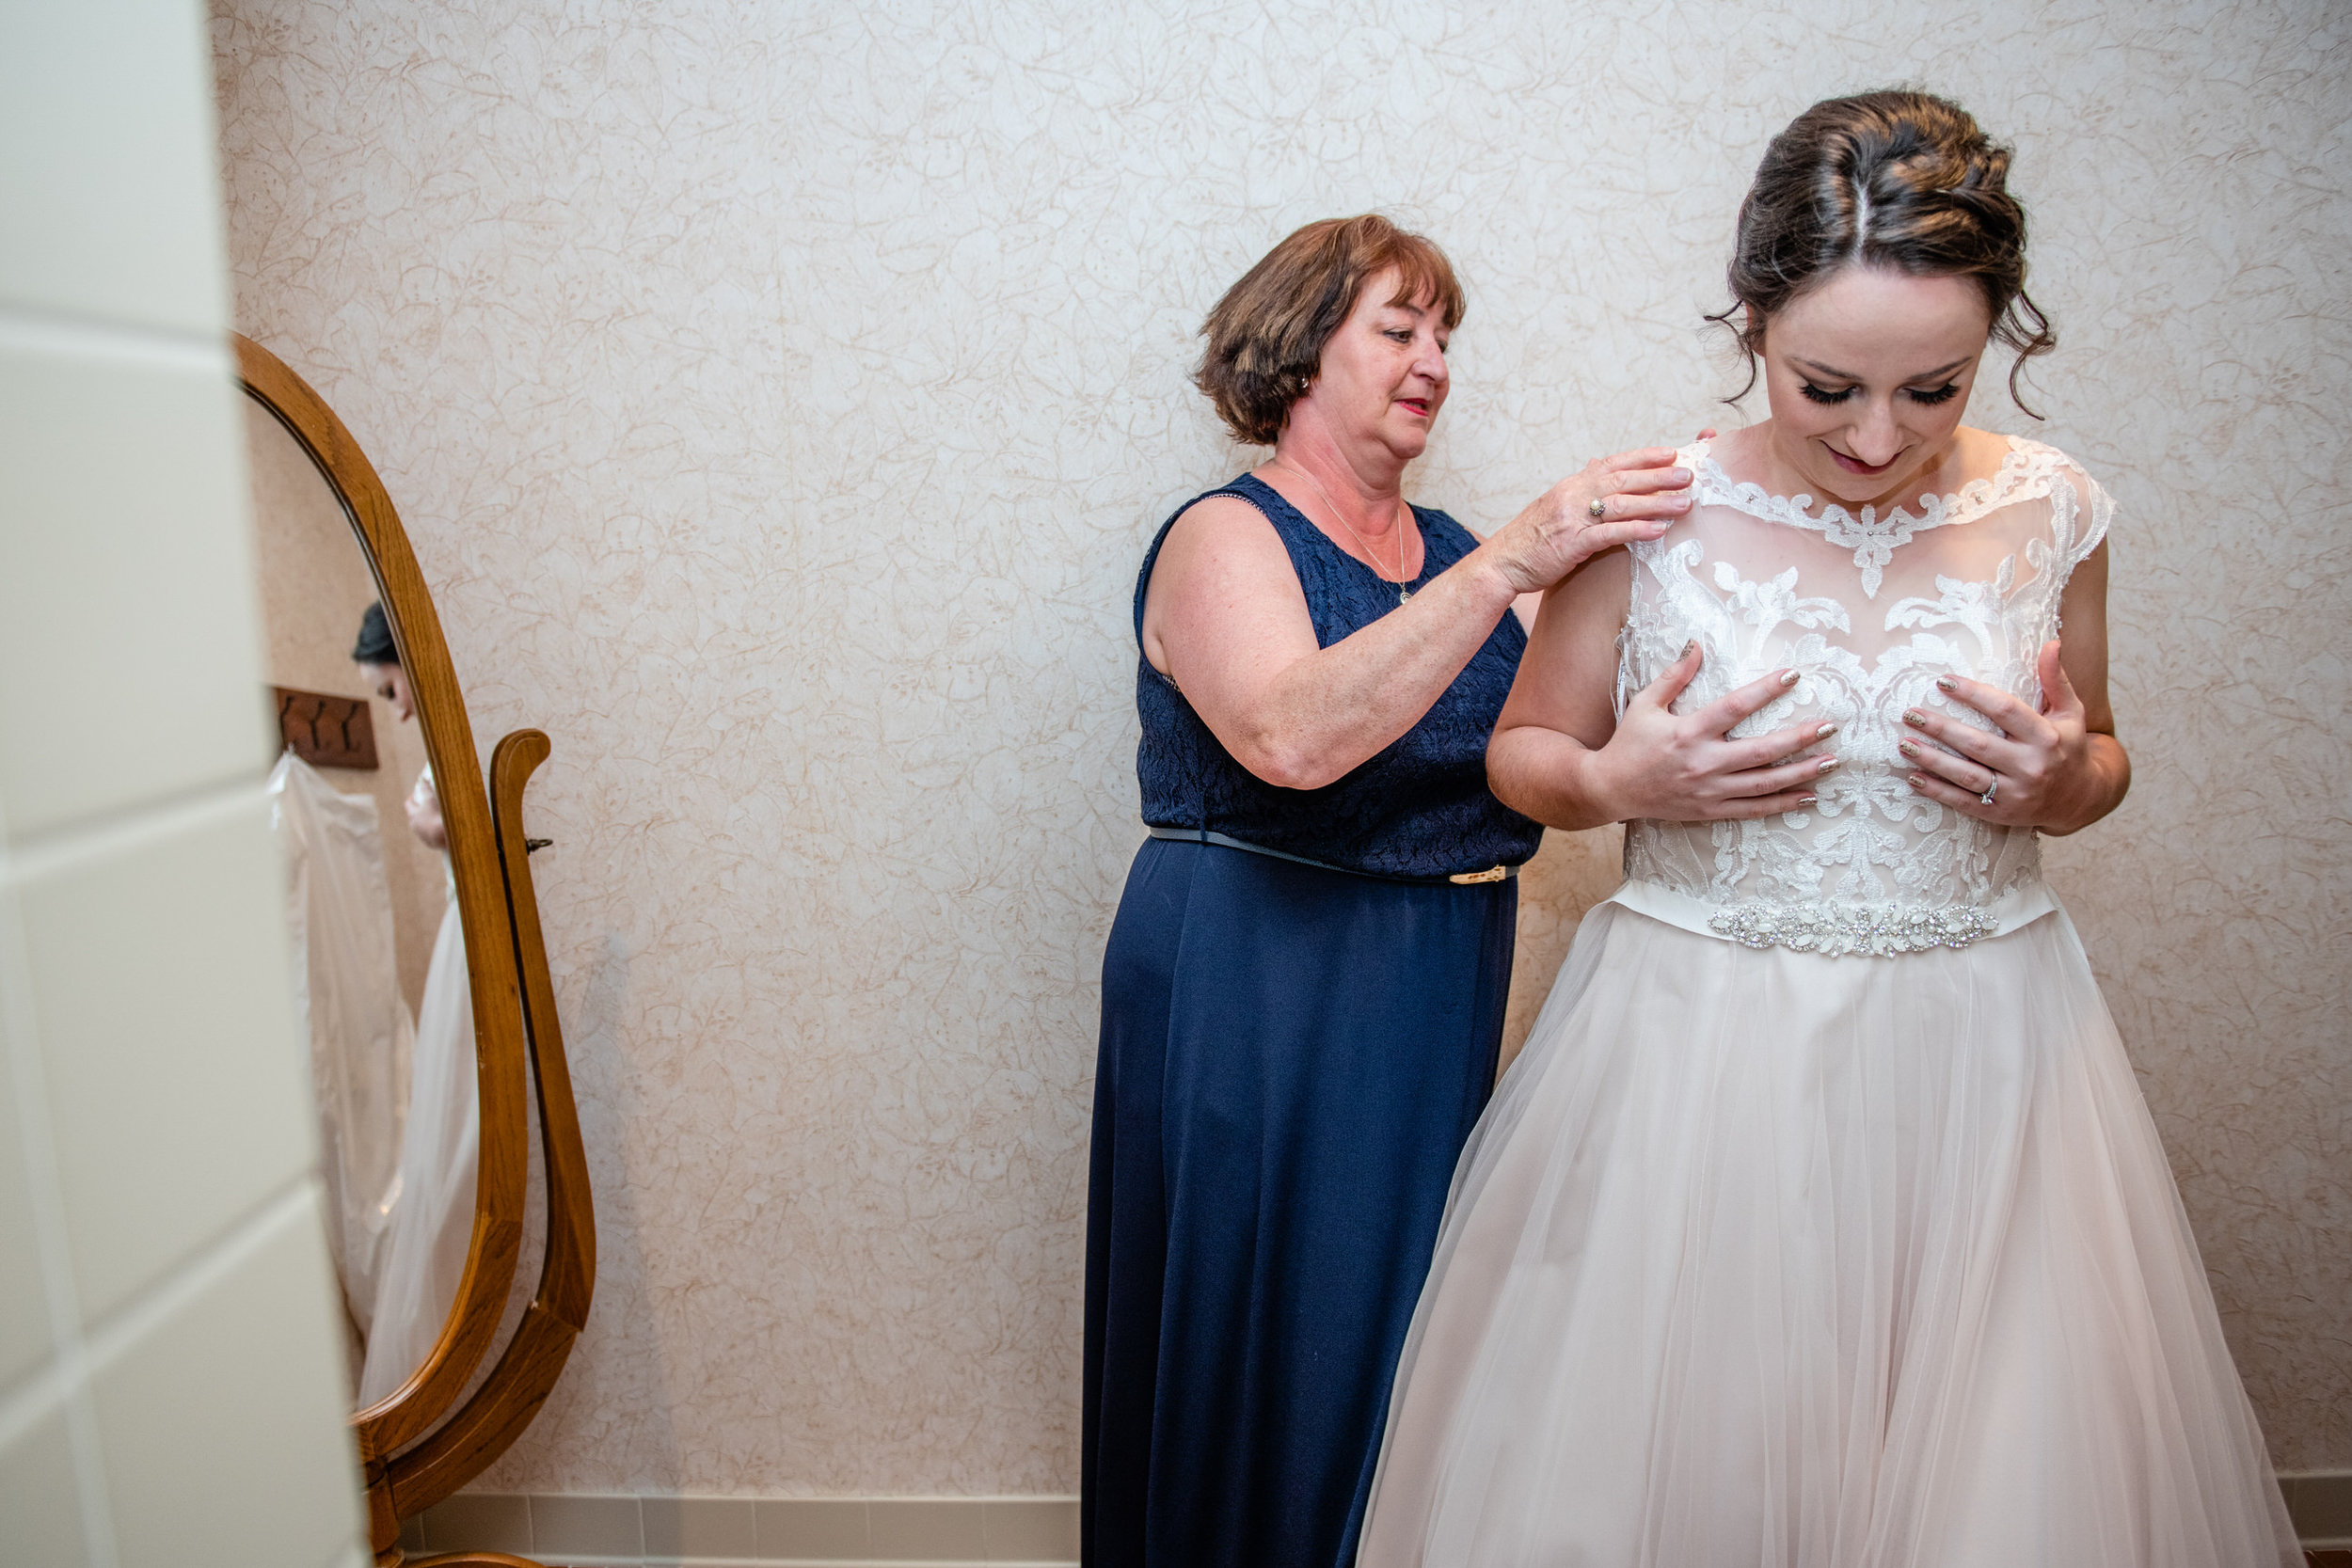 ThorpewoodWedding-Eileen&Chris-GettingReady-3109.jpg